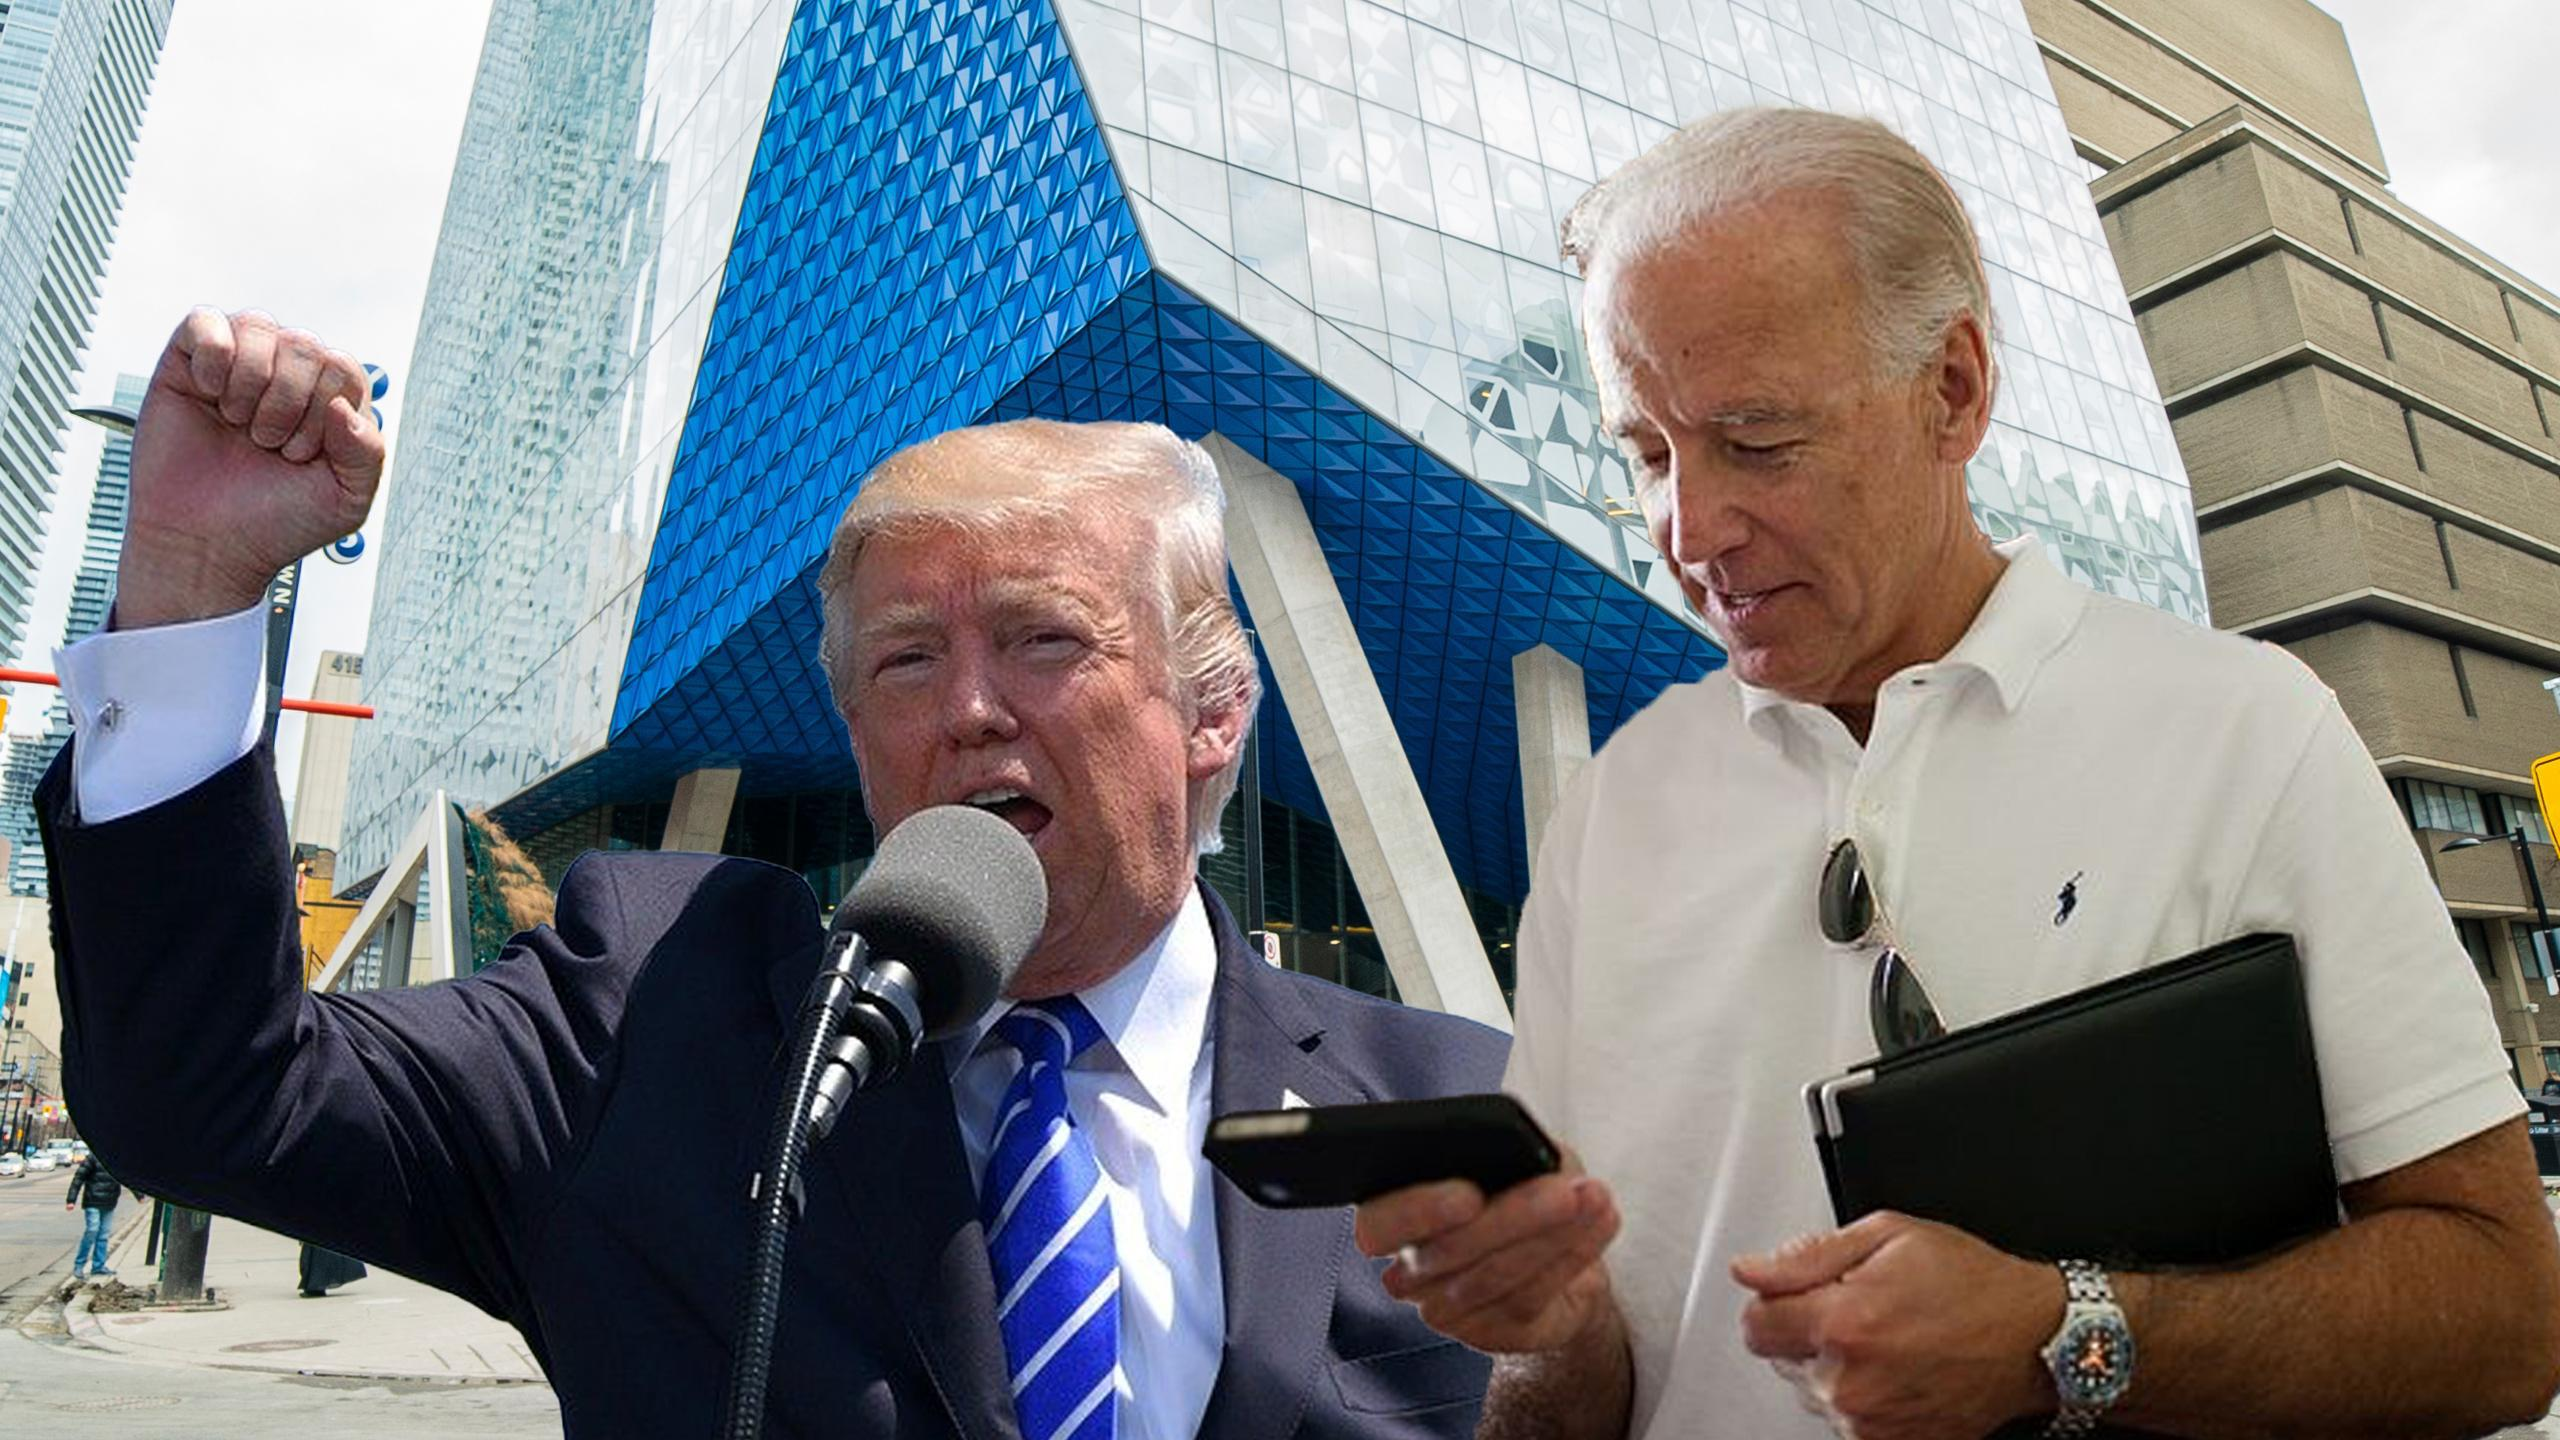 Donald Trump and Joe Biden photoshopped in front of SLC.